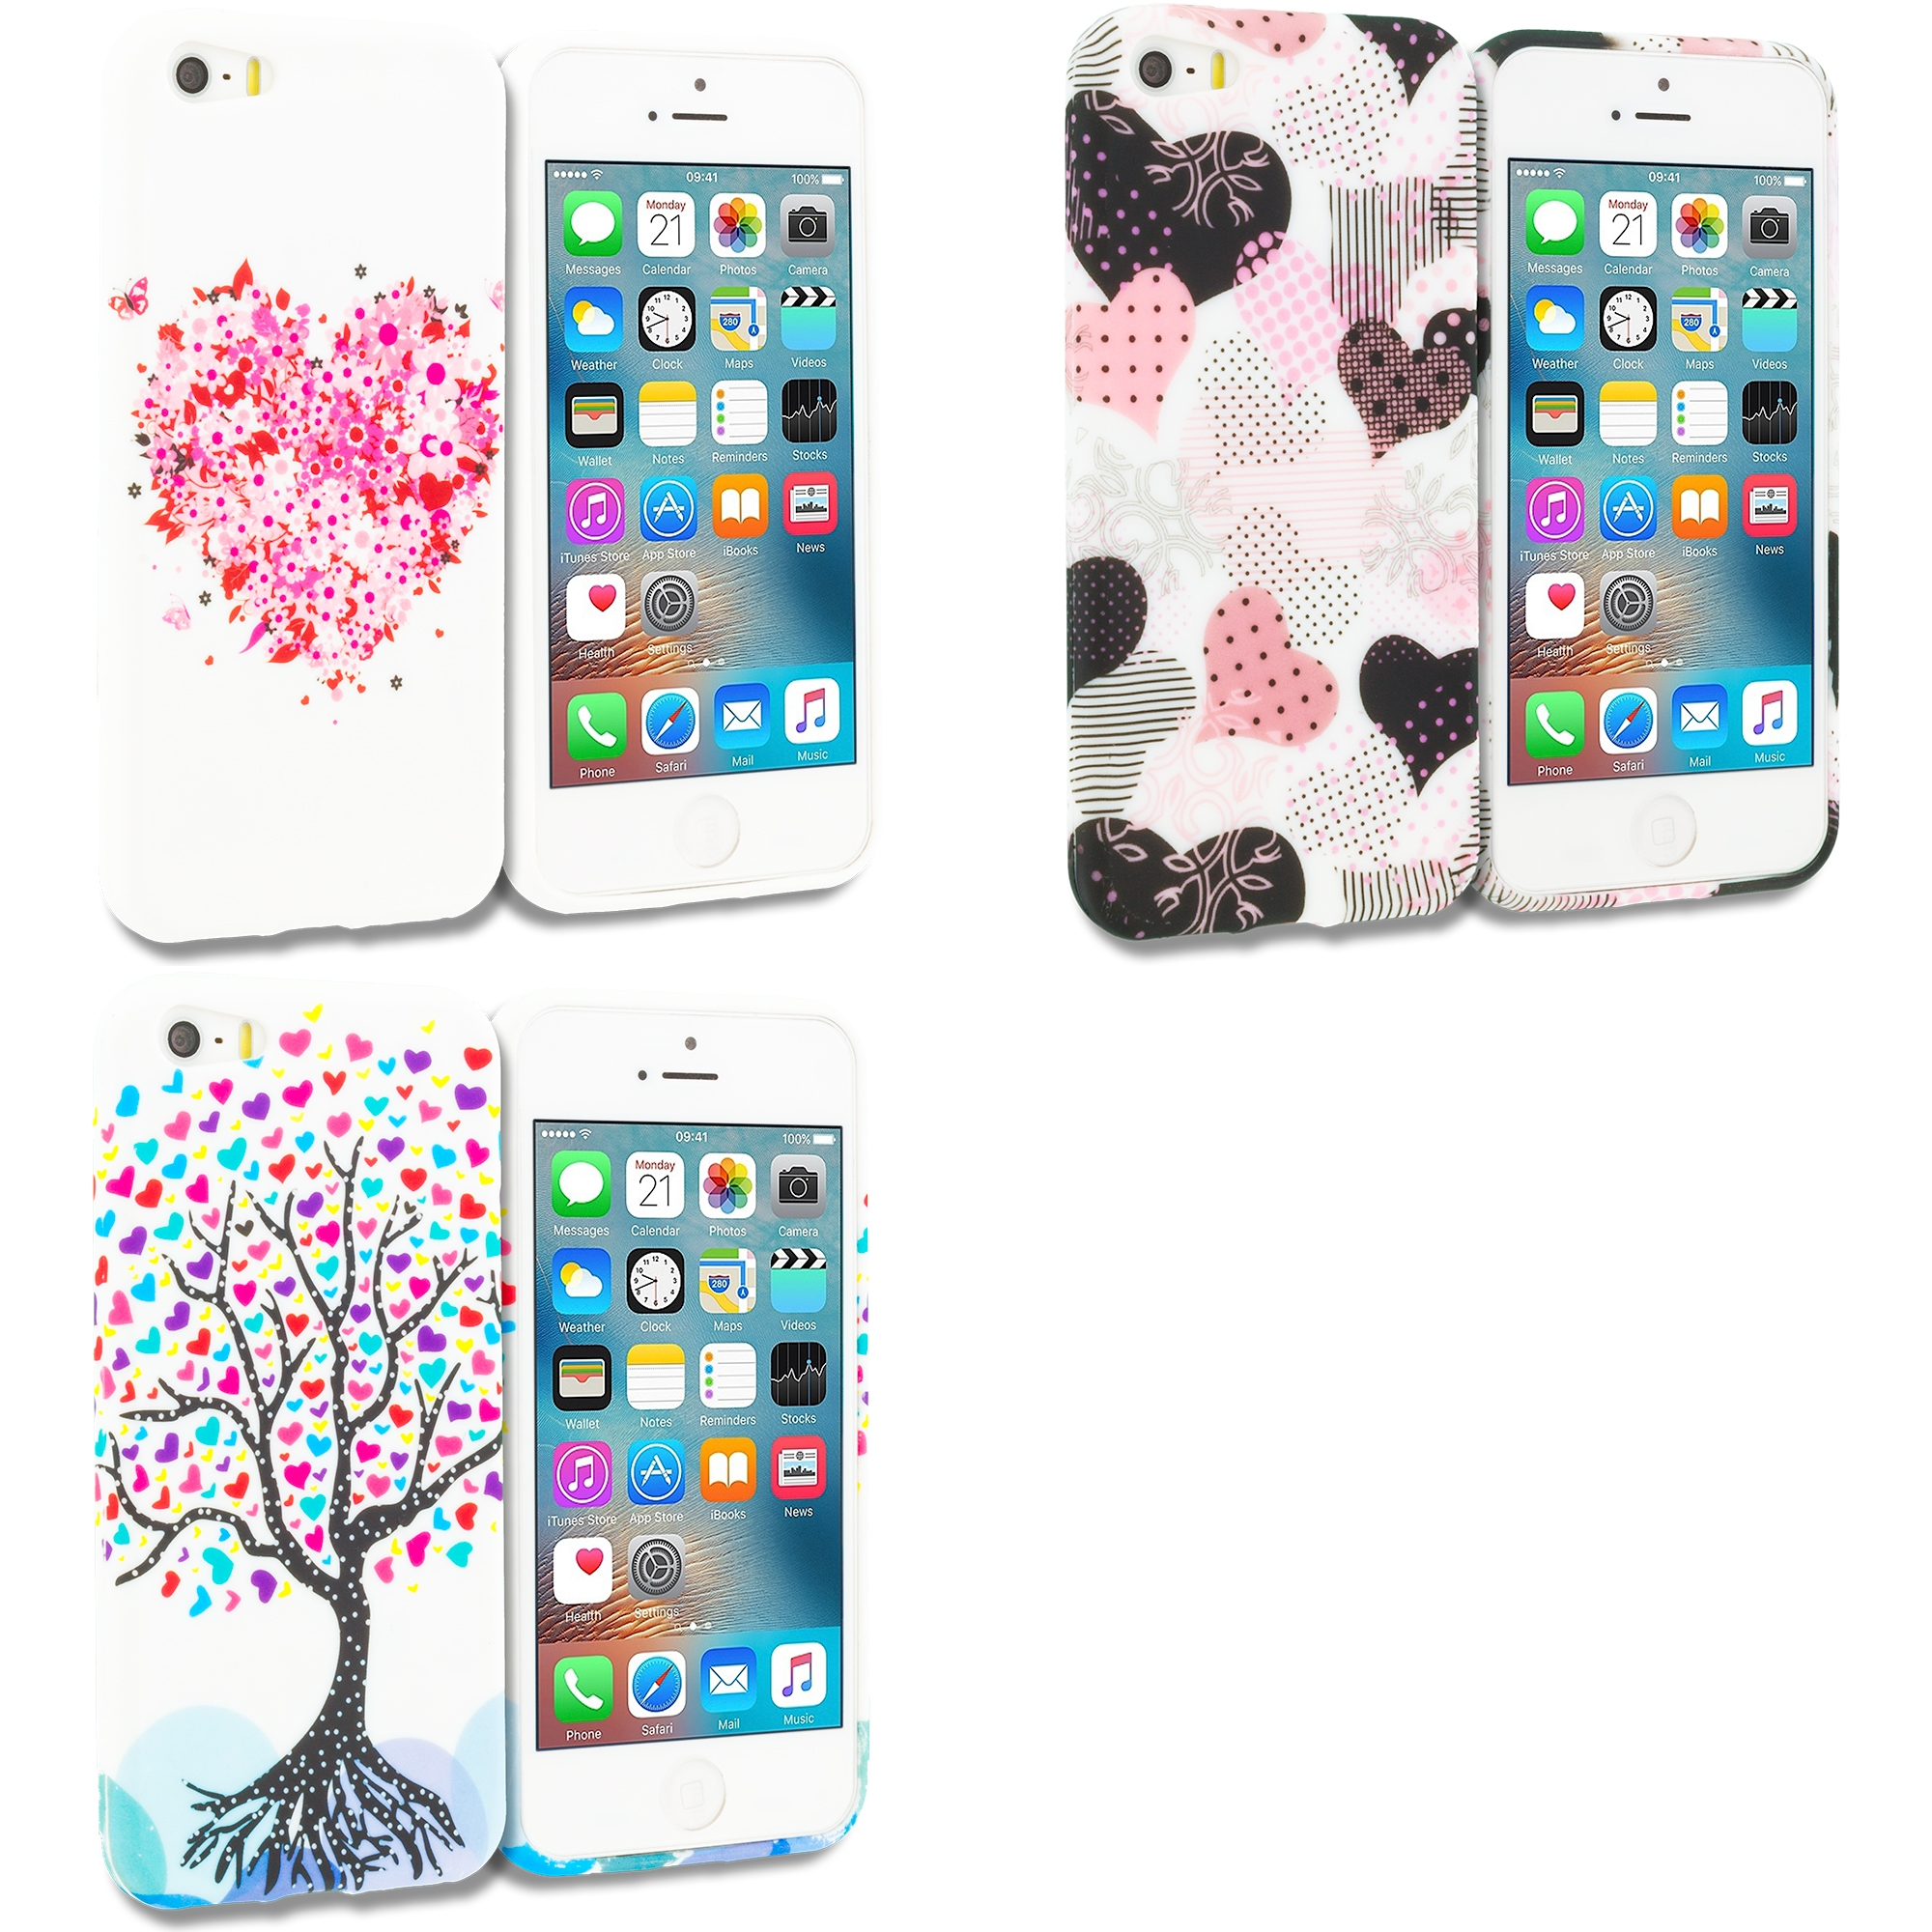 Apple iPhone 5/5S/SE Combo Pack : Hearts Full of Flowers on White TPU Design Soft Rubber Case Cover